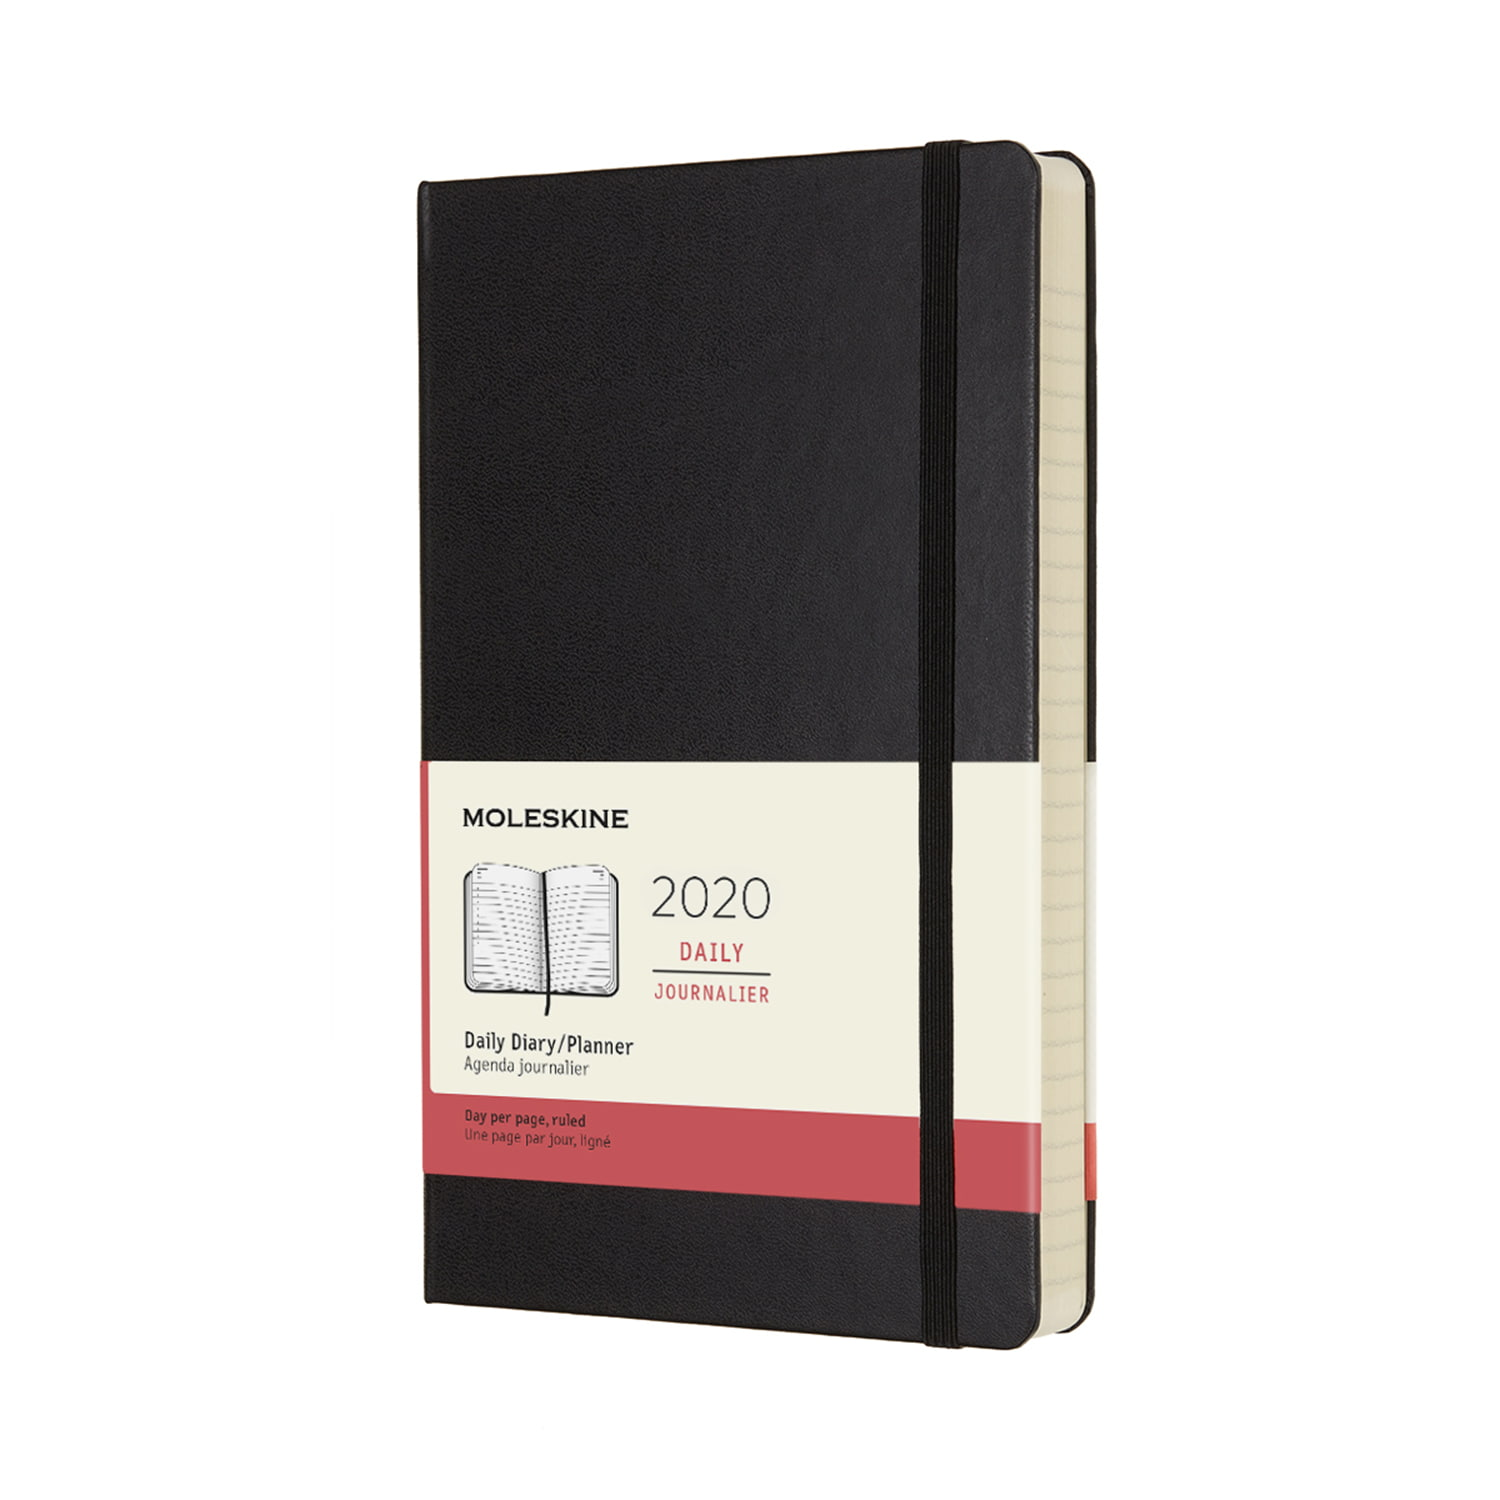 MOLESKINE 12-month large daily planner for 2020 - MOLESKINE 12-month large daily planner for 2020